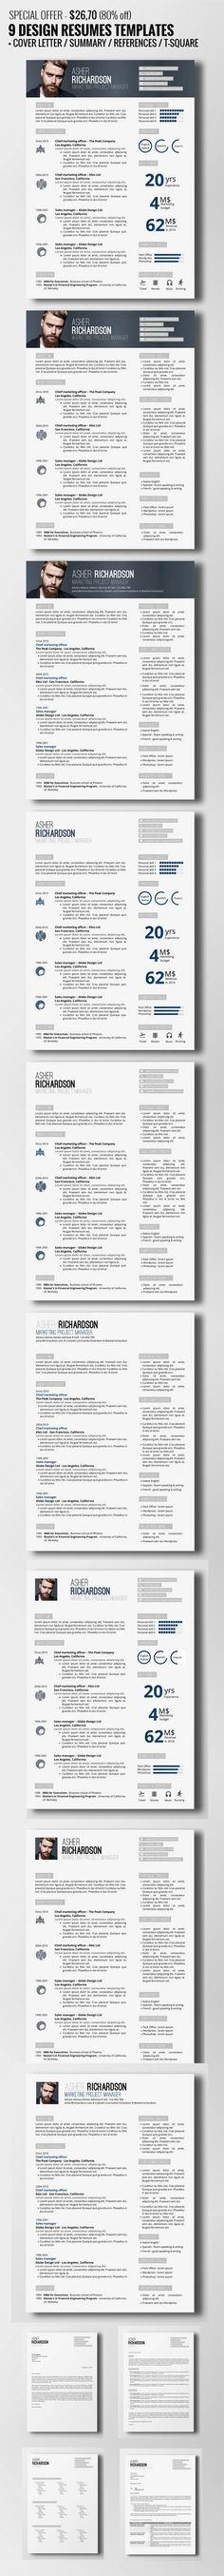 435 best Resume images on Pinterest Resume design, Design resume - really good resume examples